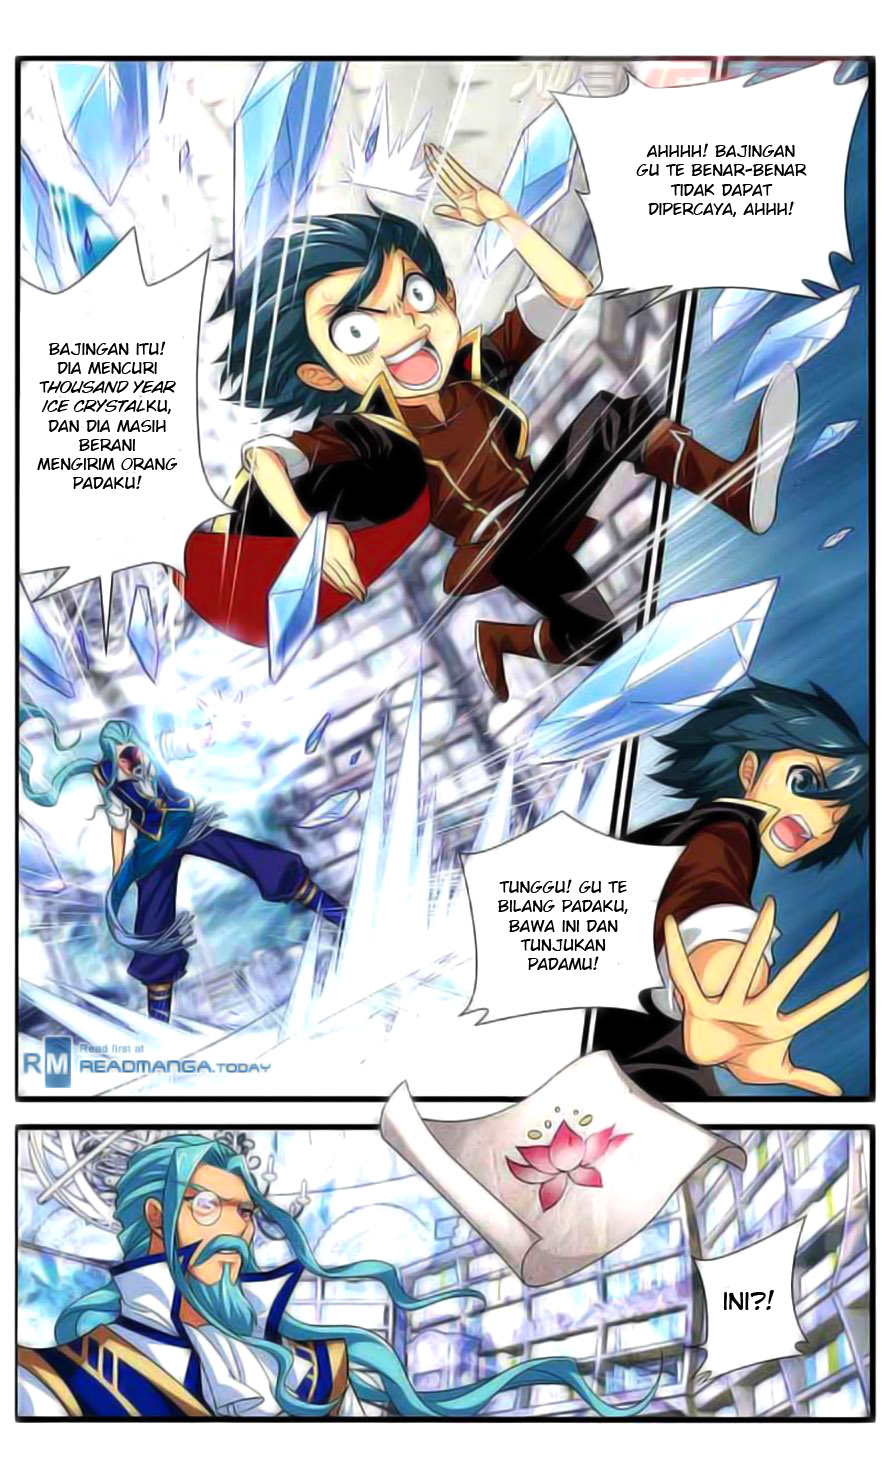 Dilarang COPAS - situs resmi www.mangacanblog.com - Komik battle through heaven 038 - chapter 38 39 Indonesia battle through heaven 038 - chapter 38 Terbaru 25|Baca Manga Komik Indonesia|Mangacan